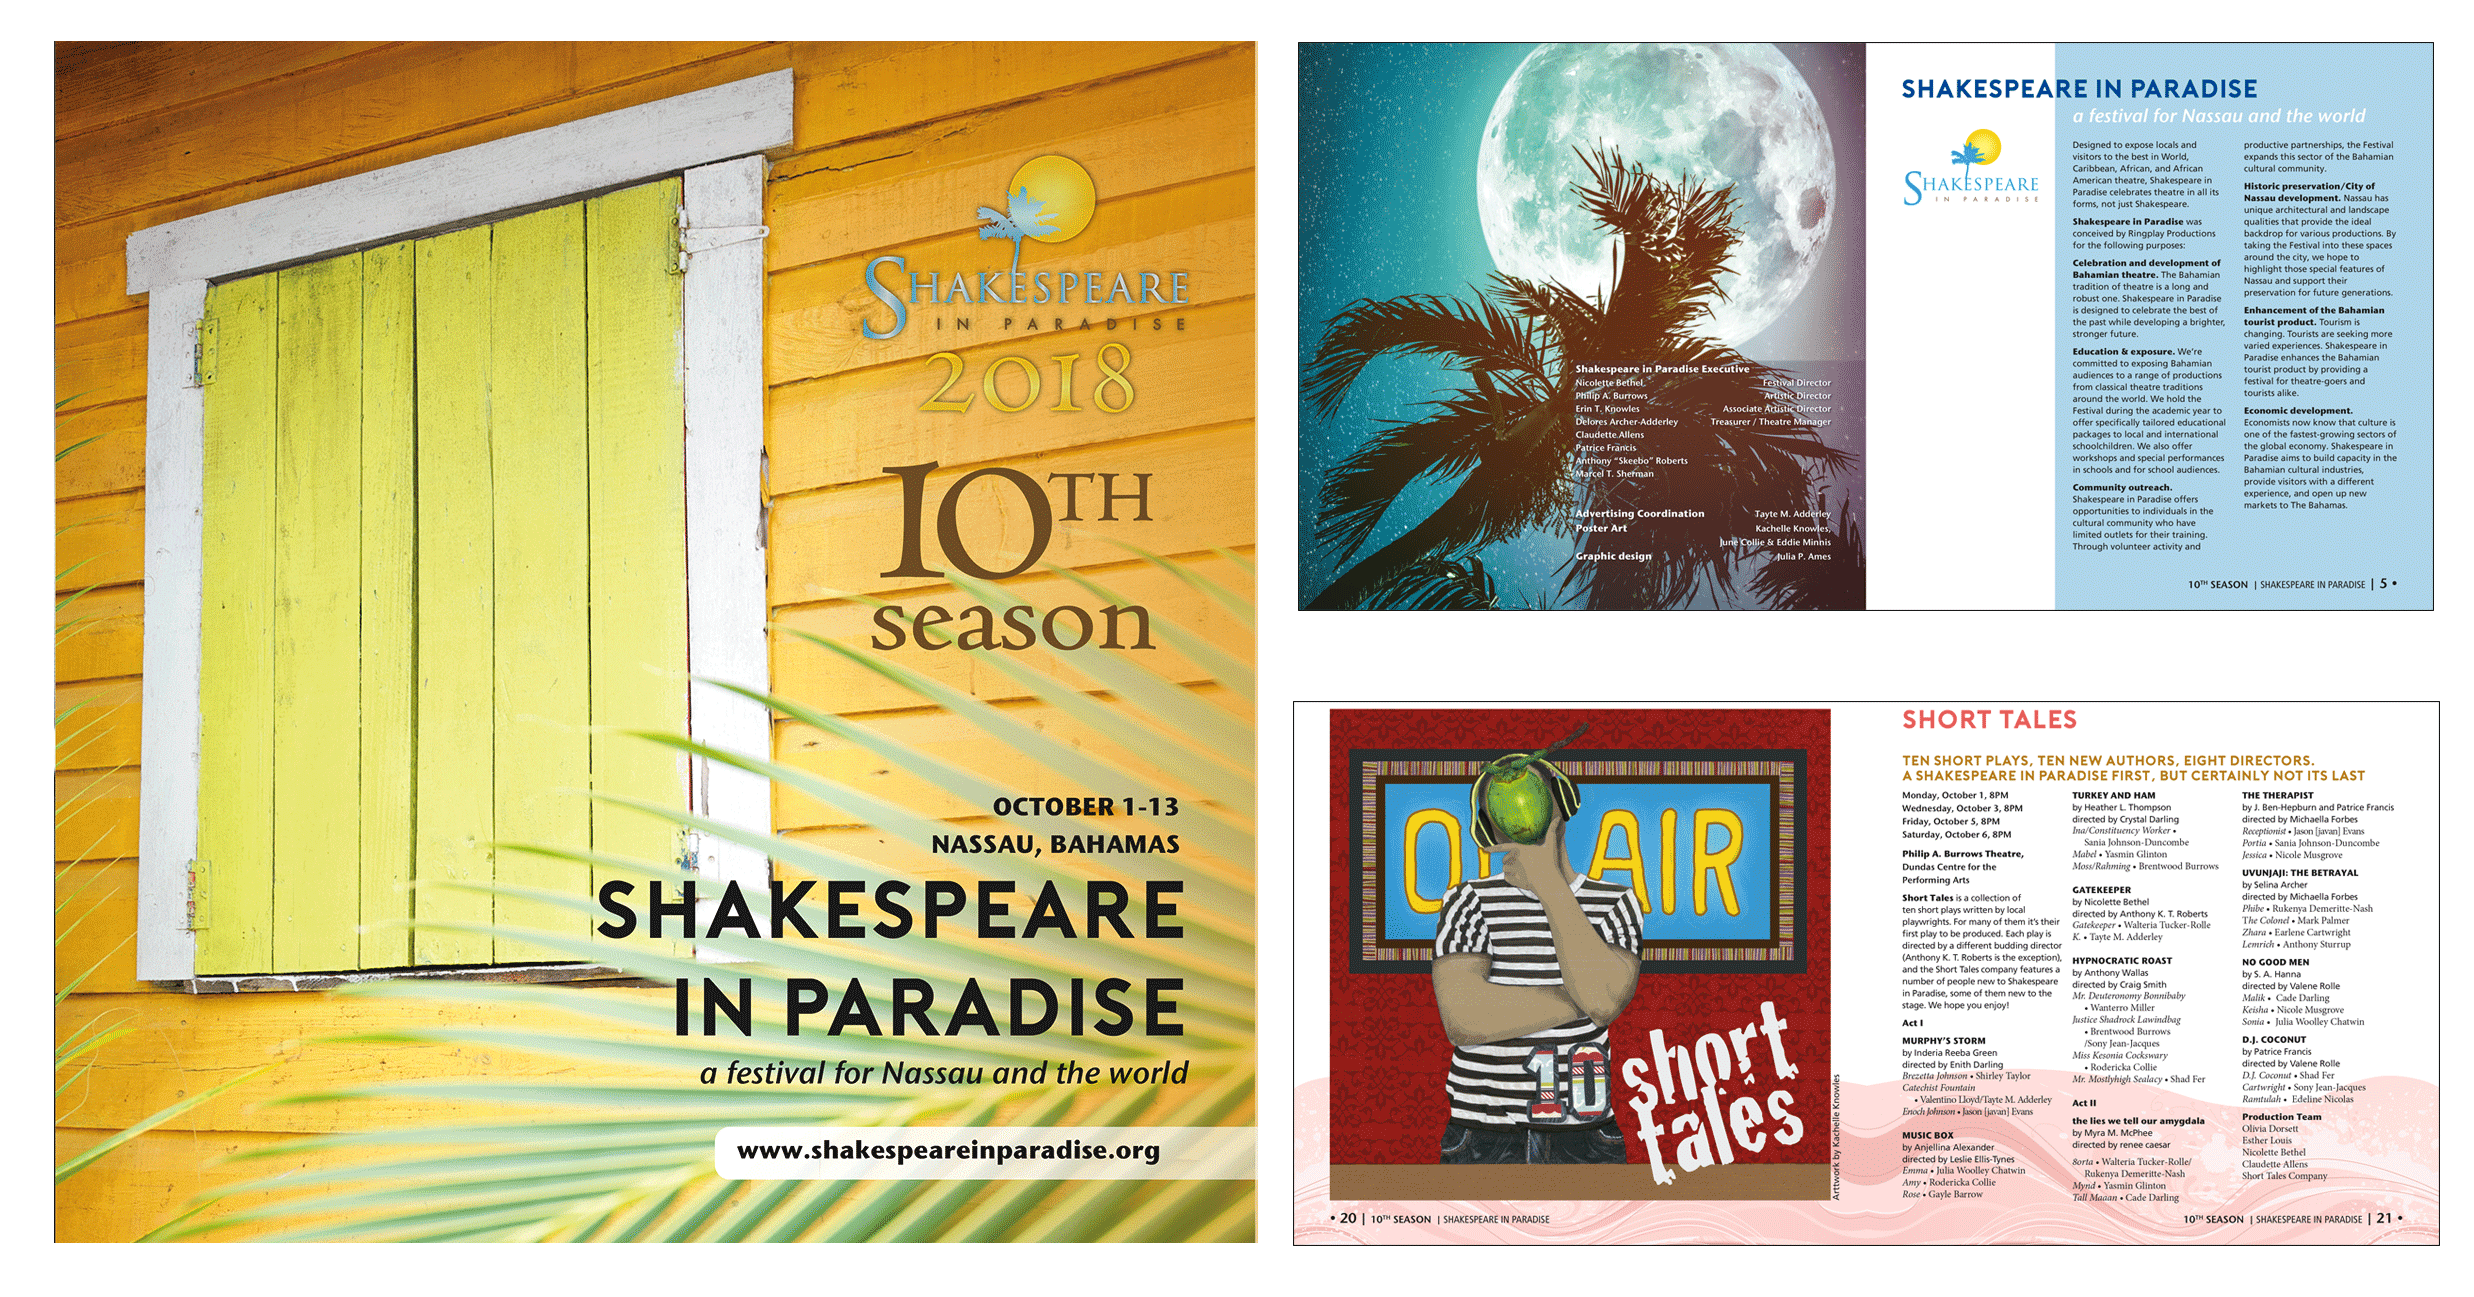 Shakespeare in Paradise program book